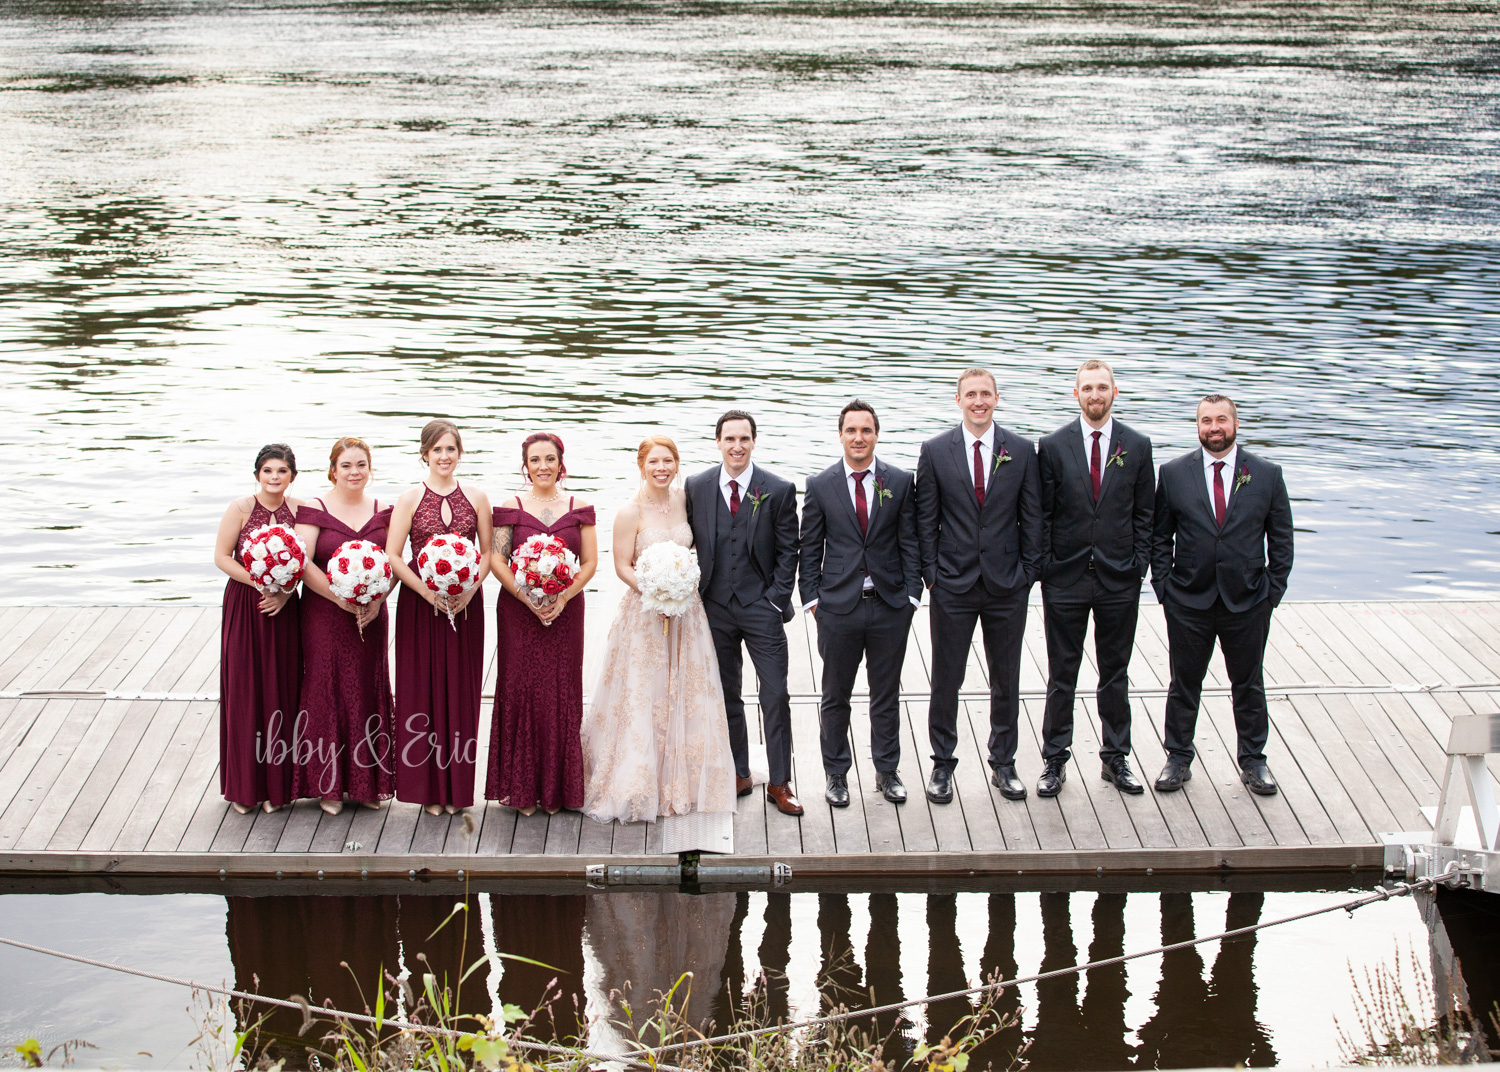 Wedding party, wearing burgundy & dark gray, lineup on a dock by the Connecticut River.